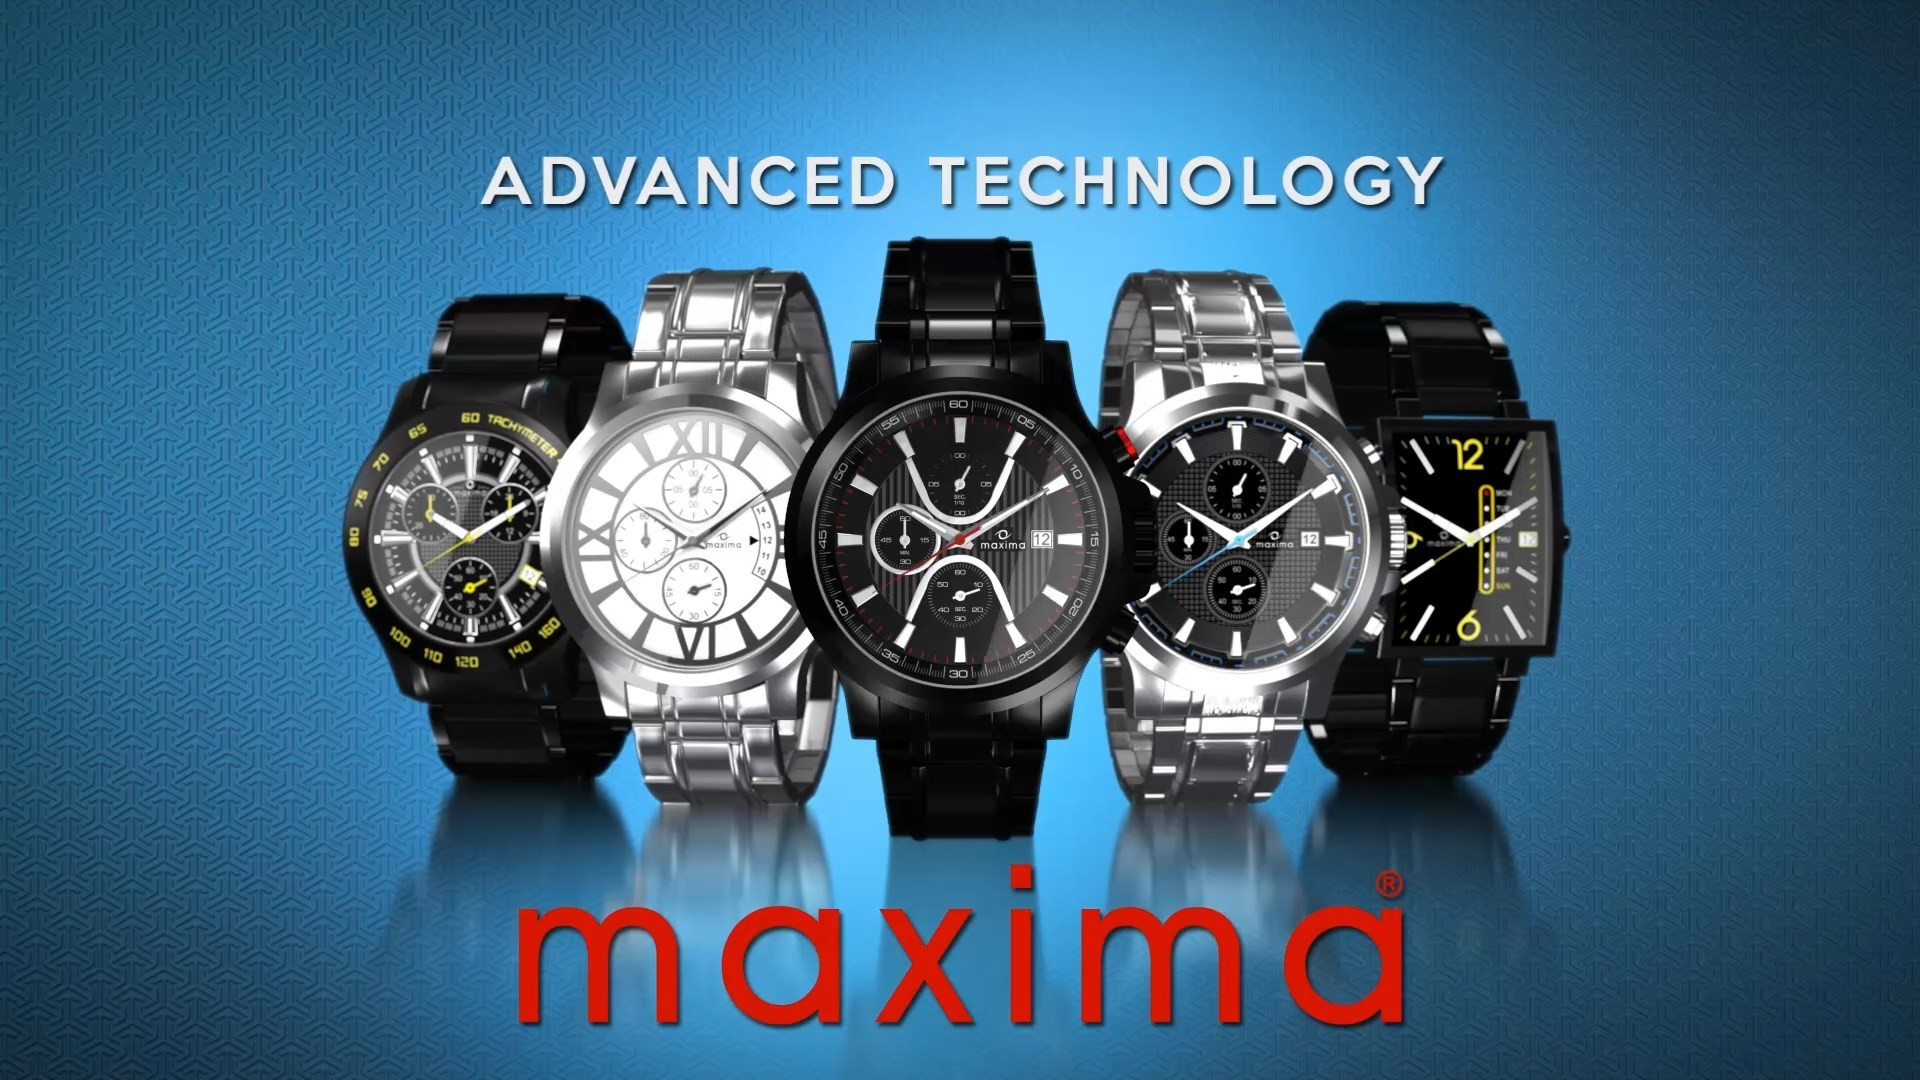 over for look silver image hover maxima watches analog men this black leather watch by shopping zoom to buy explore online